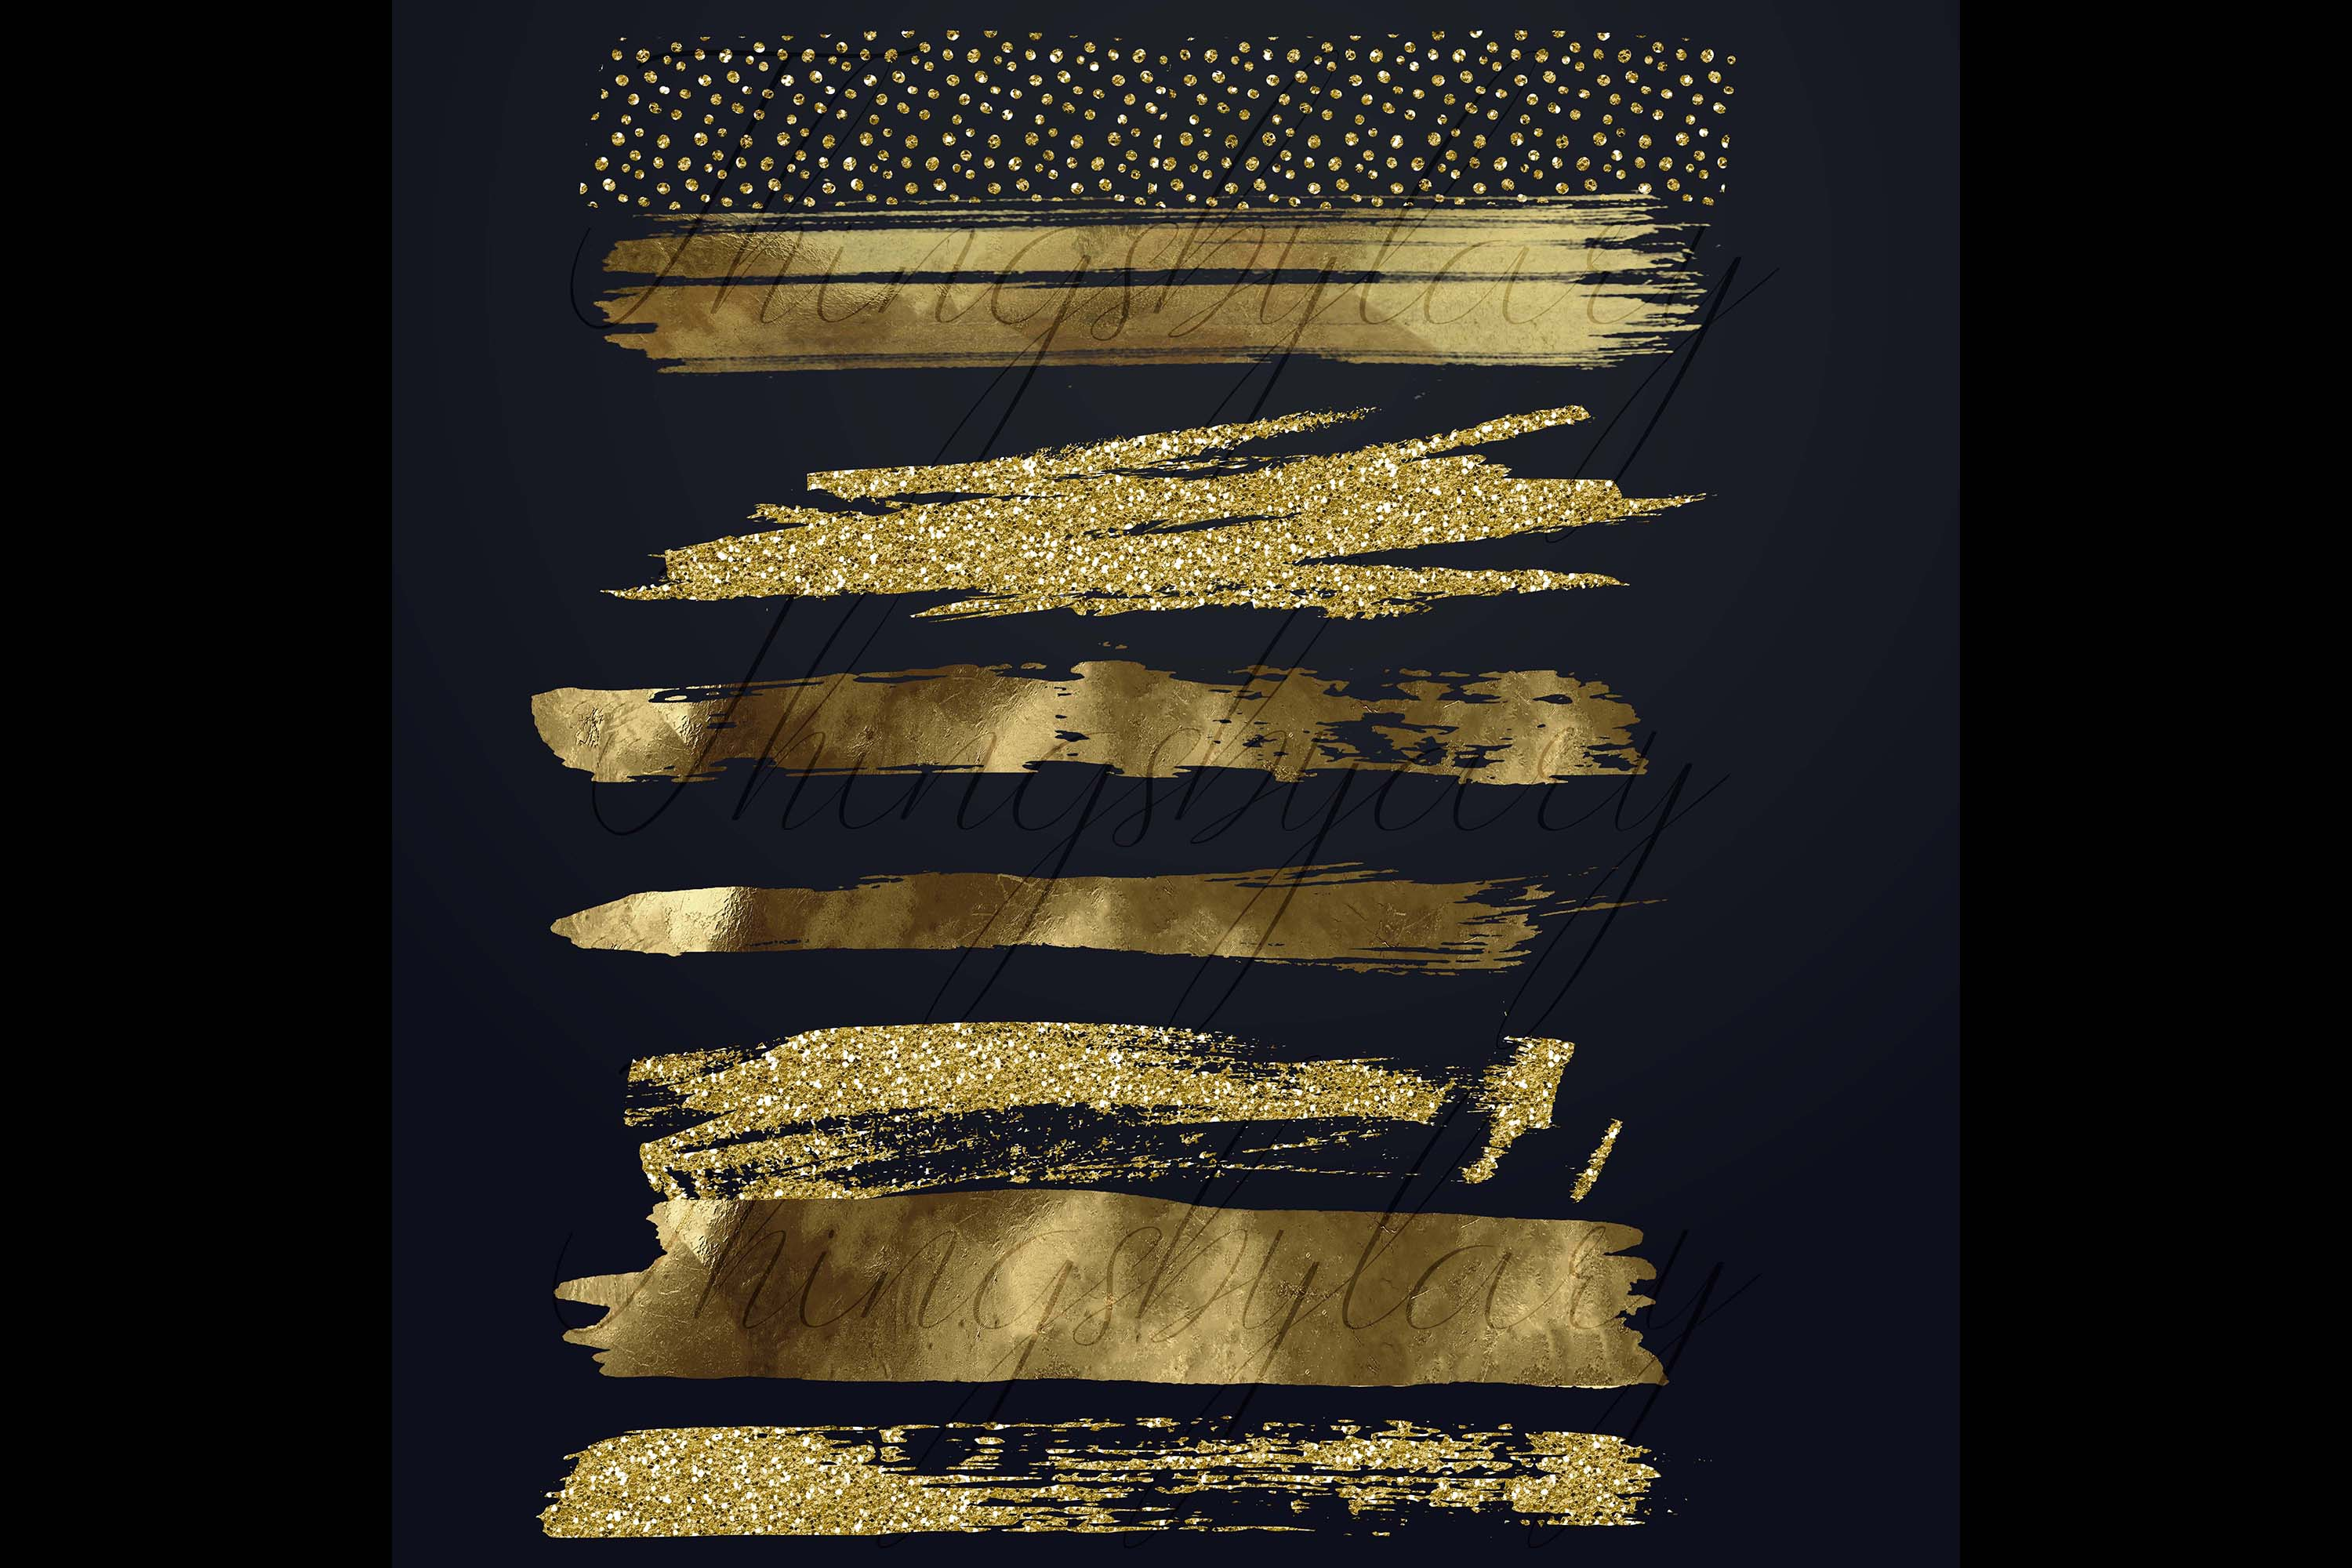 33 Gold Glitter and Black Hand Drawn Brush Strokes Images example image 9